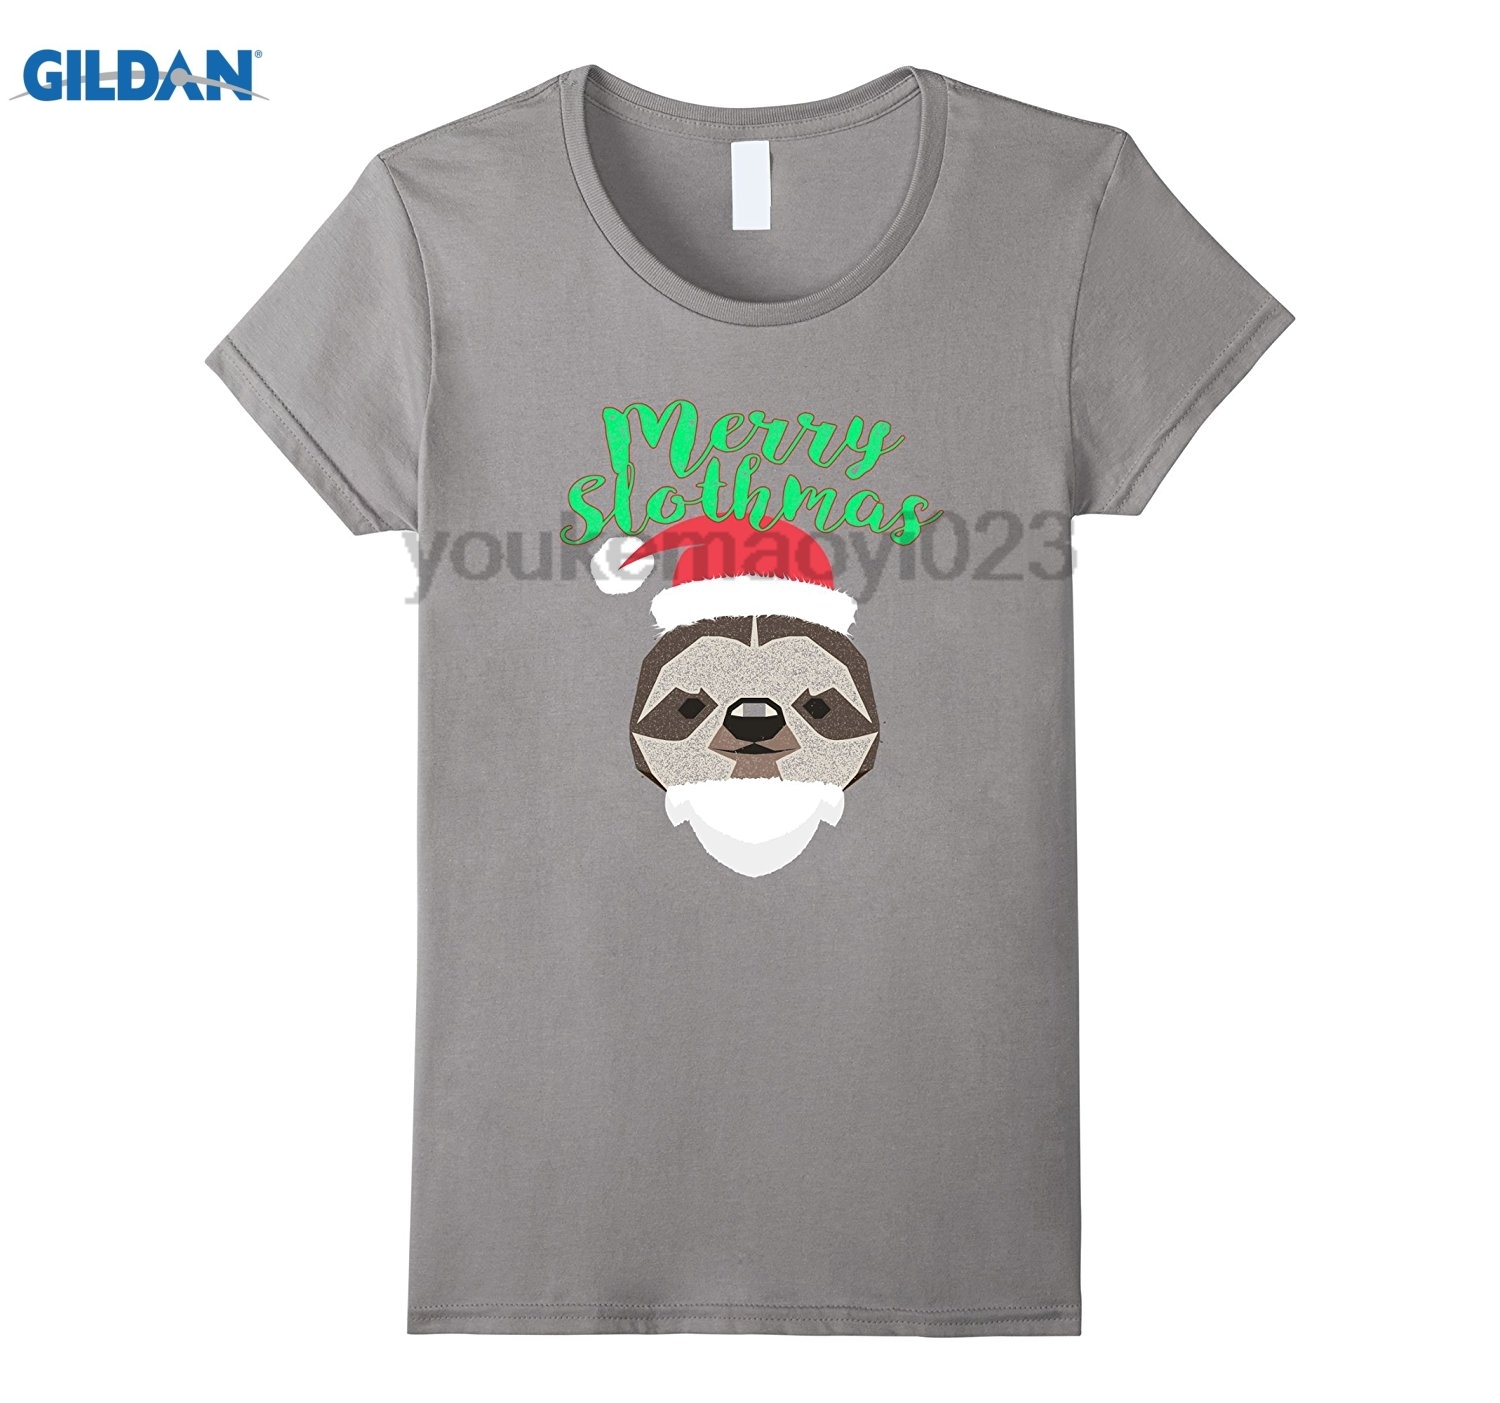 GILDAN Sloth Animal Merry Slothmas Shirt 4 Christmas Kids Men Women